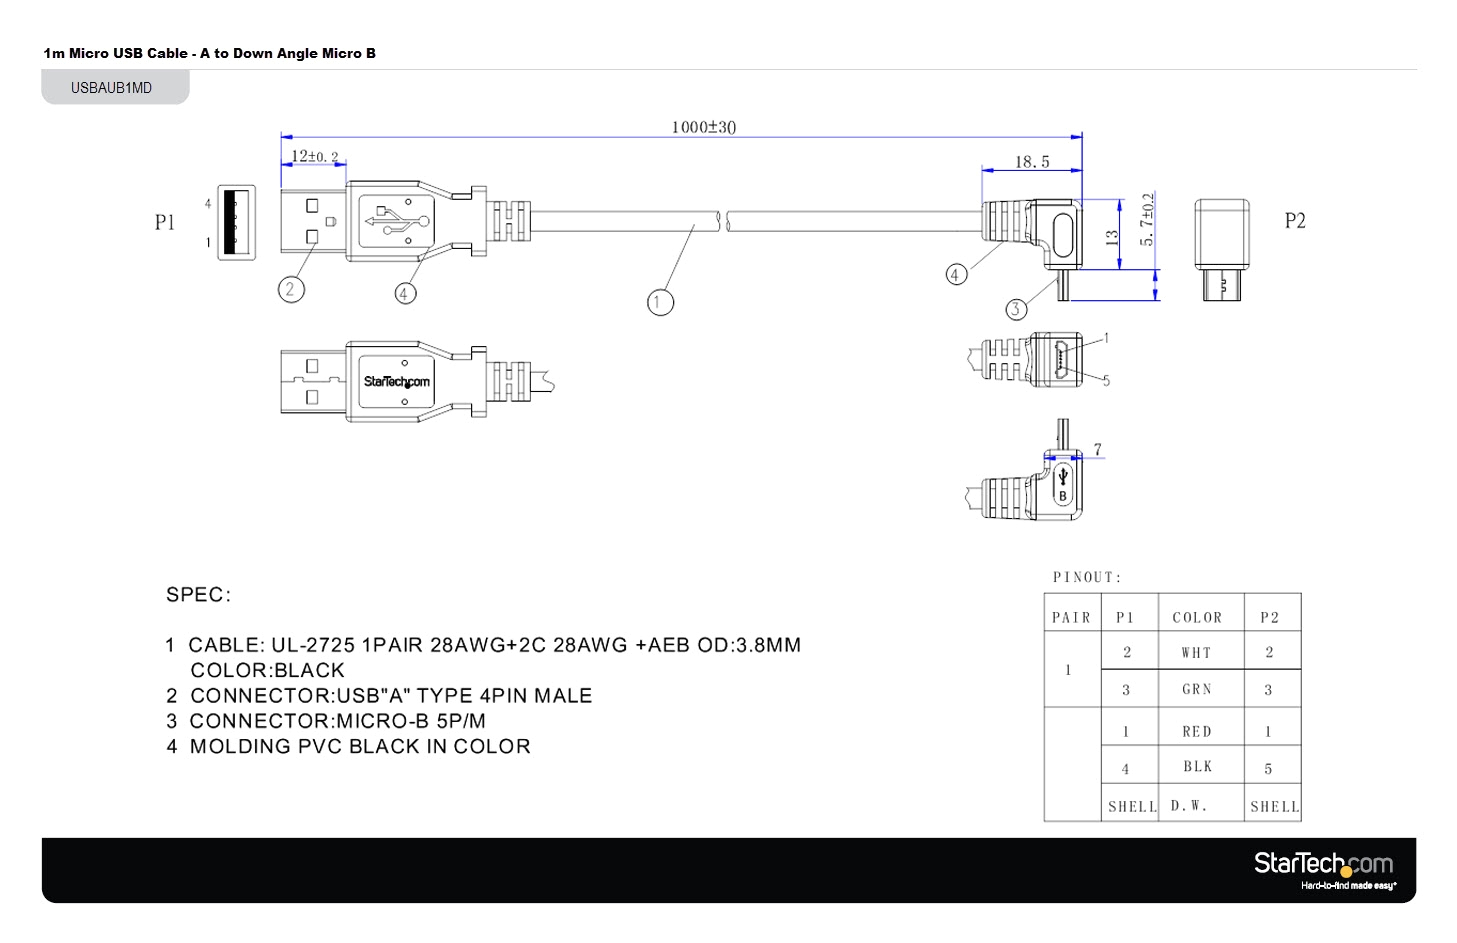 Wiring Diagram for Usb Plug Micro B Usb Wiring Diagram Wiring Diagram Technic